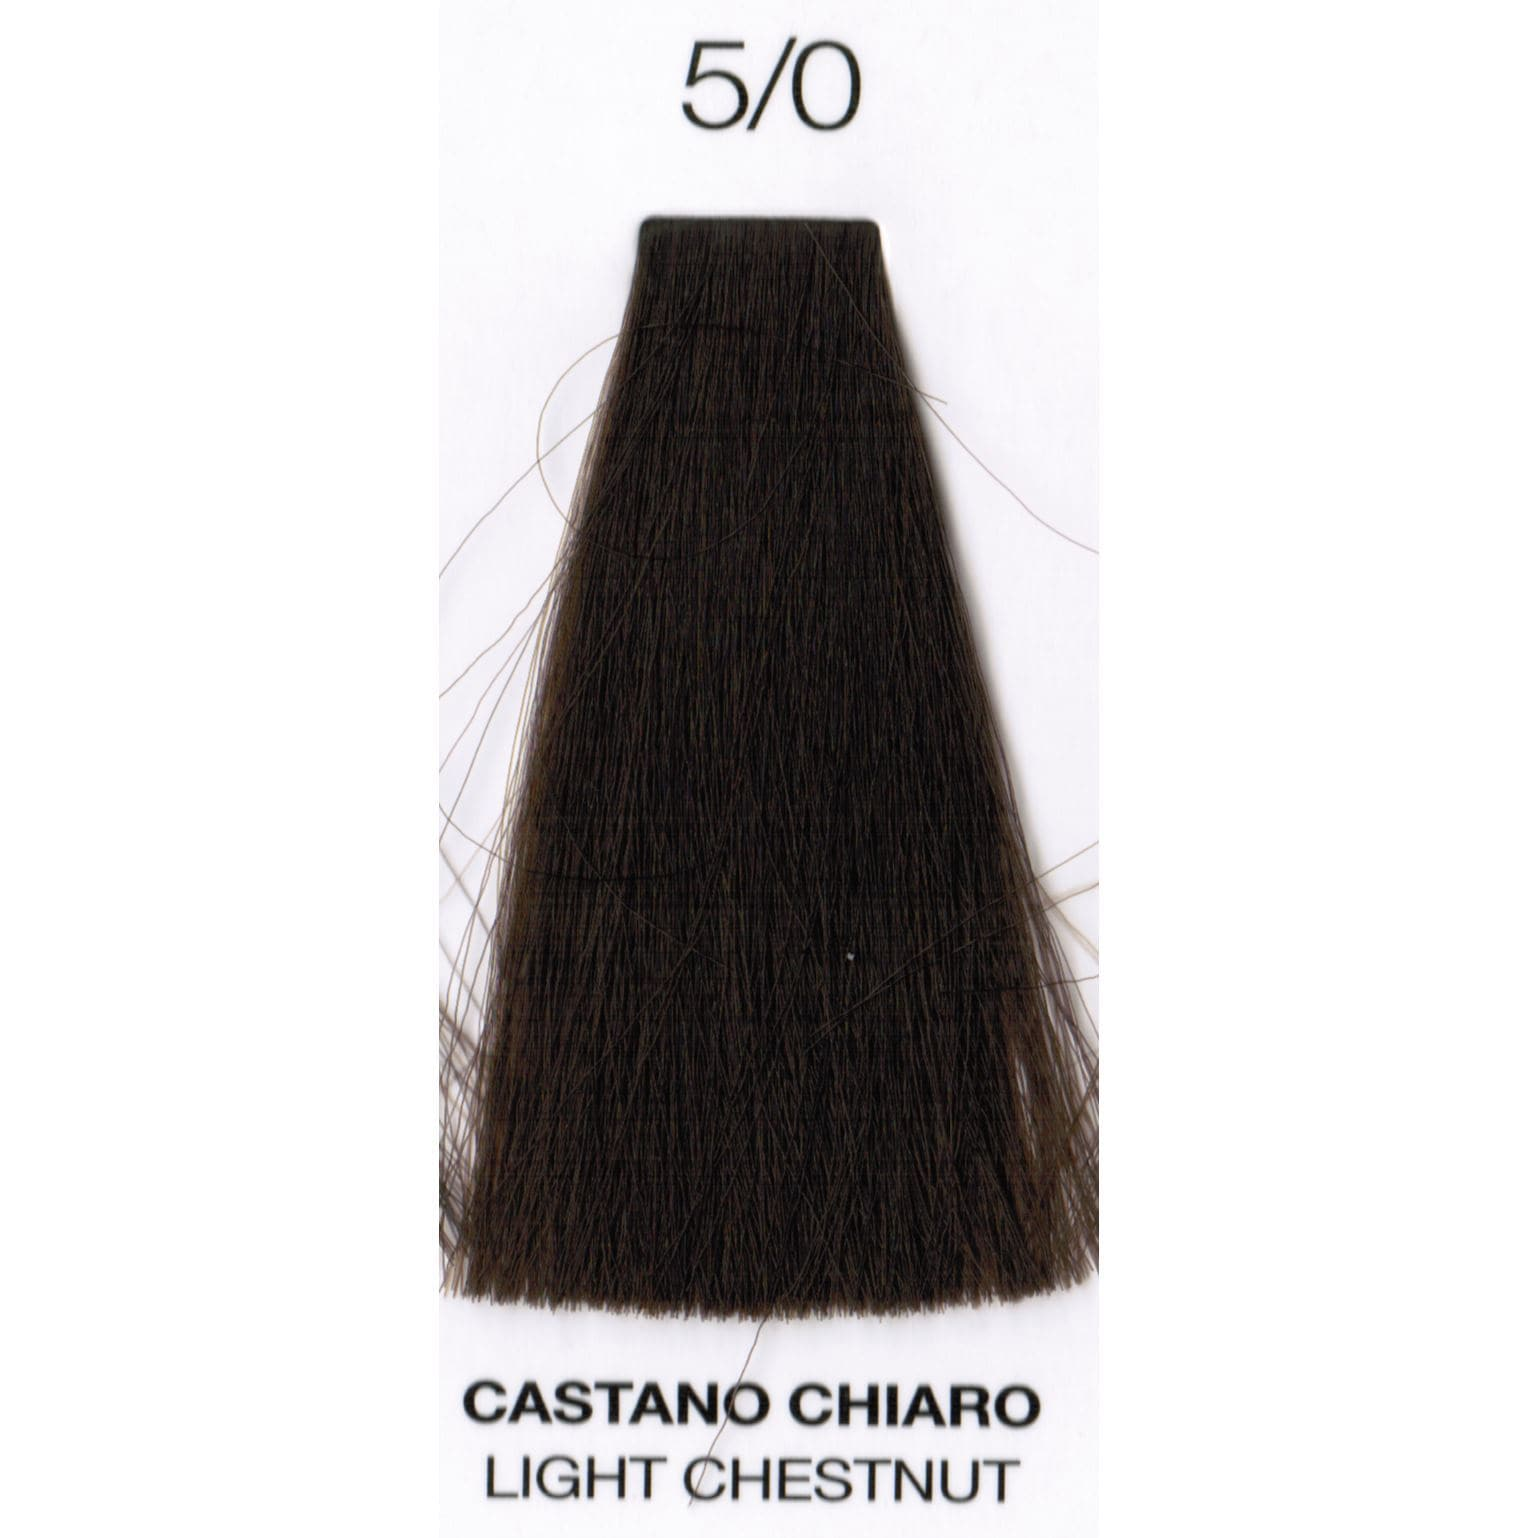 5/0 Light Chestnut | Purity | Ammonia-Free Permanent Hair Color | OYSTER | SHSalons.com